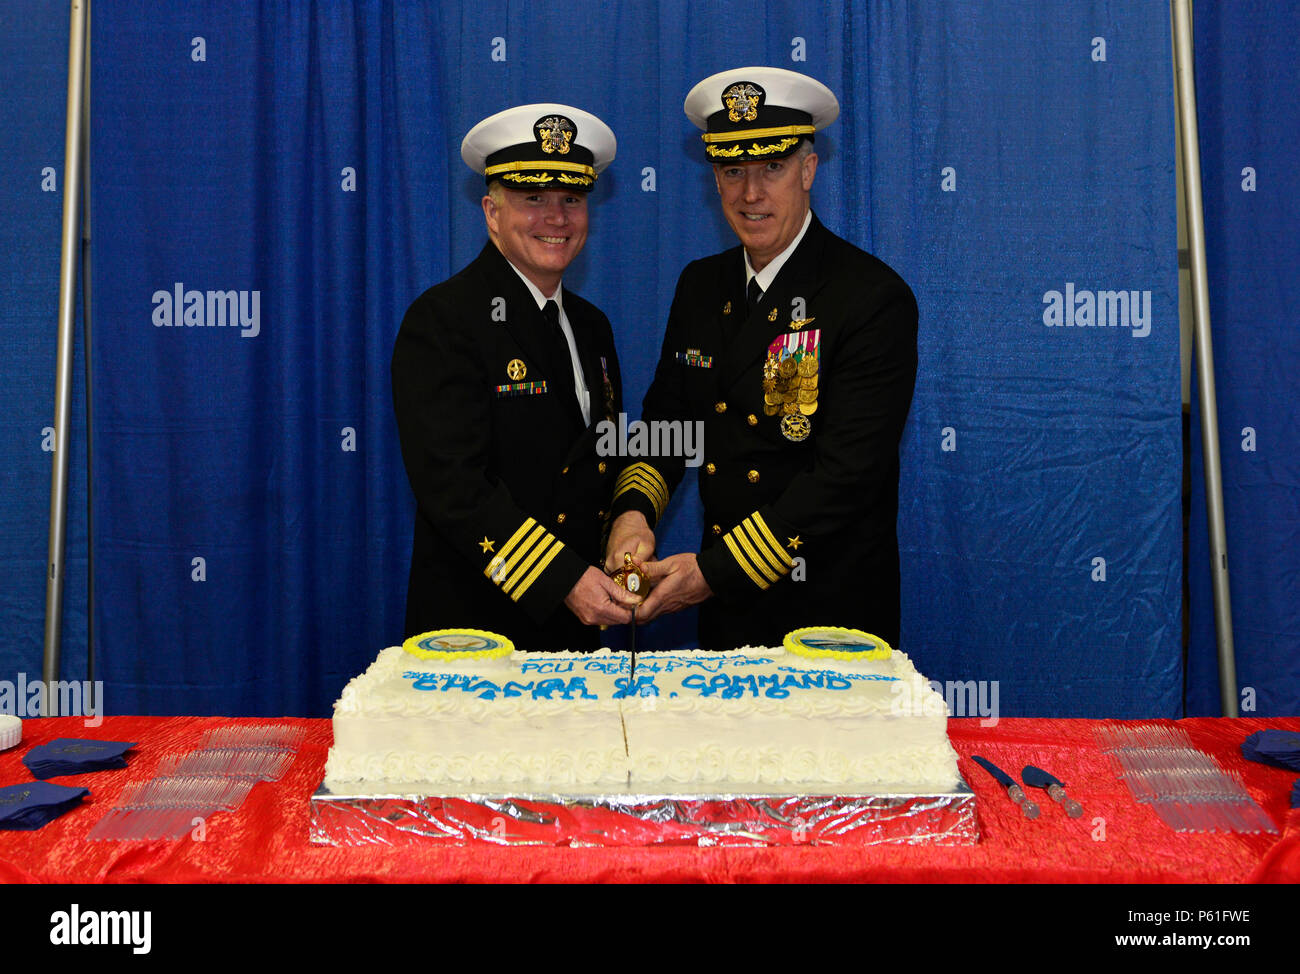 NEWPORT NEWS, Va., (April 8, 2016) -- Capt. Richard McCormack, commanding officer of Pre-Commissioning Unit Gerald R. Ford (CVN 78), and Capt. John F. Meier cut the cake at a reception following a change of command in the ship's hangar bay. Ford is the first of a new class of aircraft carriers currently under construction by Huntington Ingalls Newport News Shipbuilding. (U.S. Navy photo by Mass Communication Specialist Seaman Apprentice Gitte Schirrmacher/Released) - Stock Image